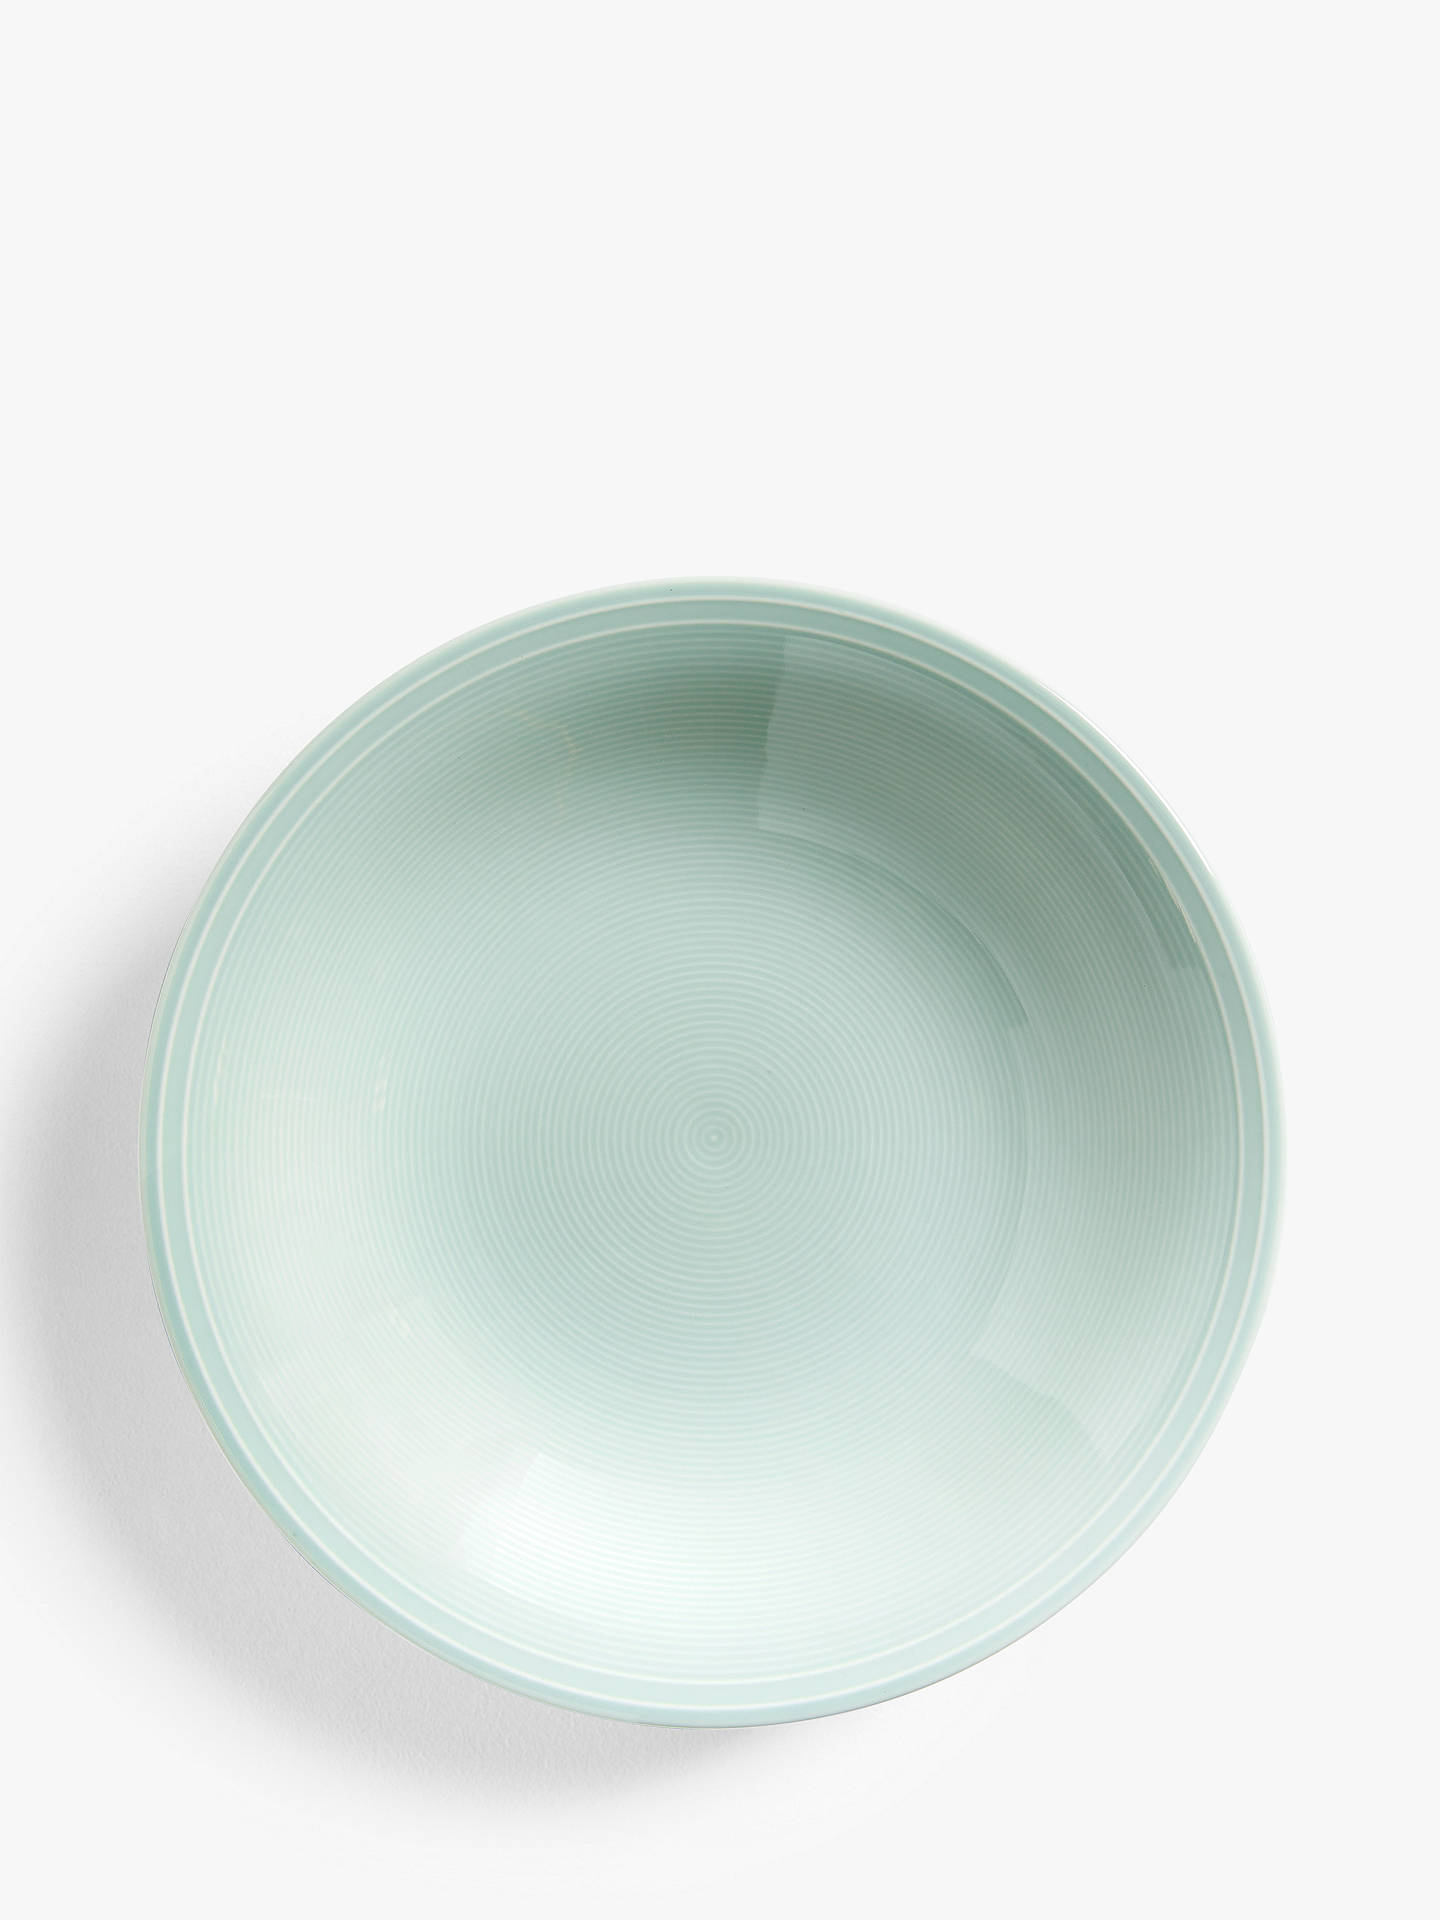 Buy John Lewis & Partners Rhythm Soup Plate, 23cm, Blue Online at johnlewis.com